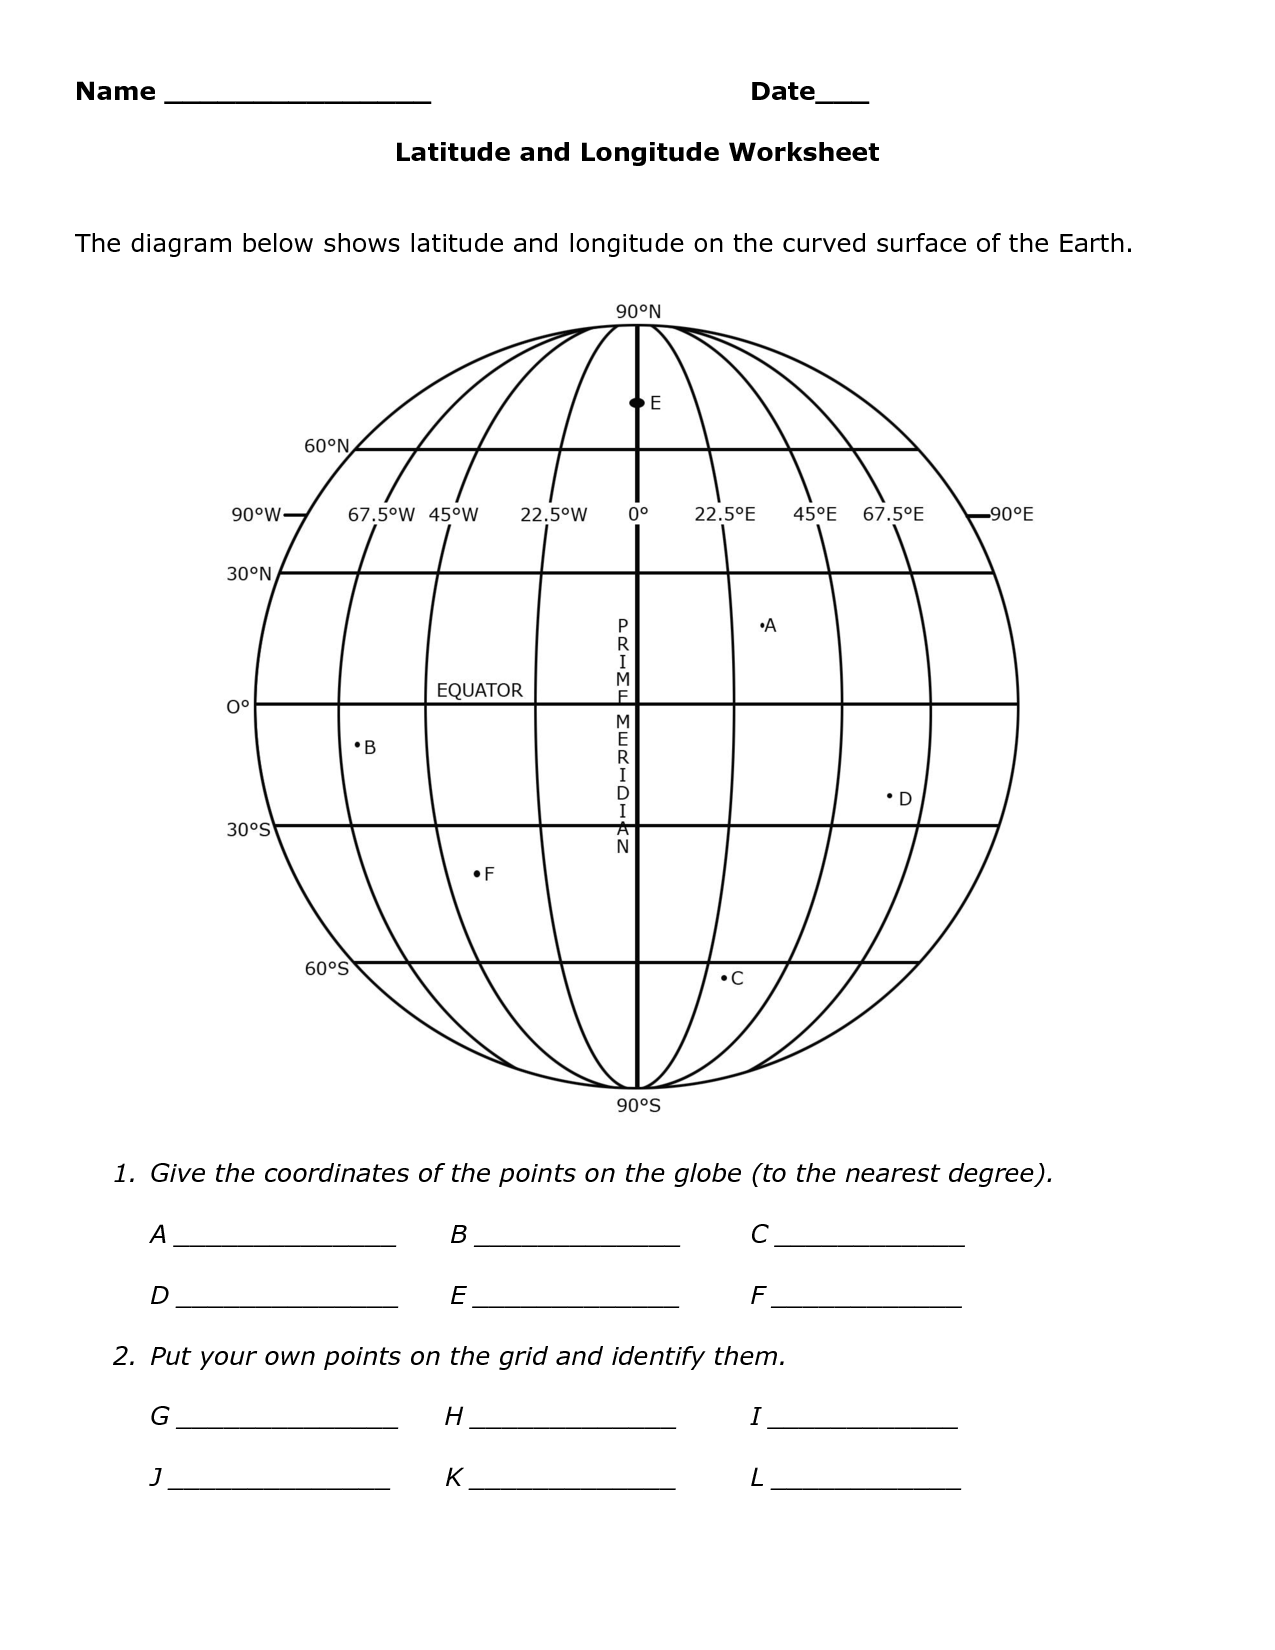 Worksheets Latitude And Longitude Worksheets For 5th Grade using latitude and longitude name use the print pinterest the